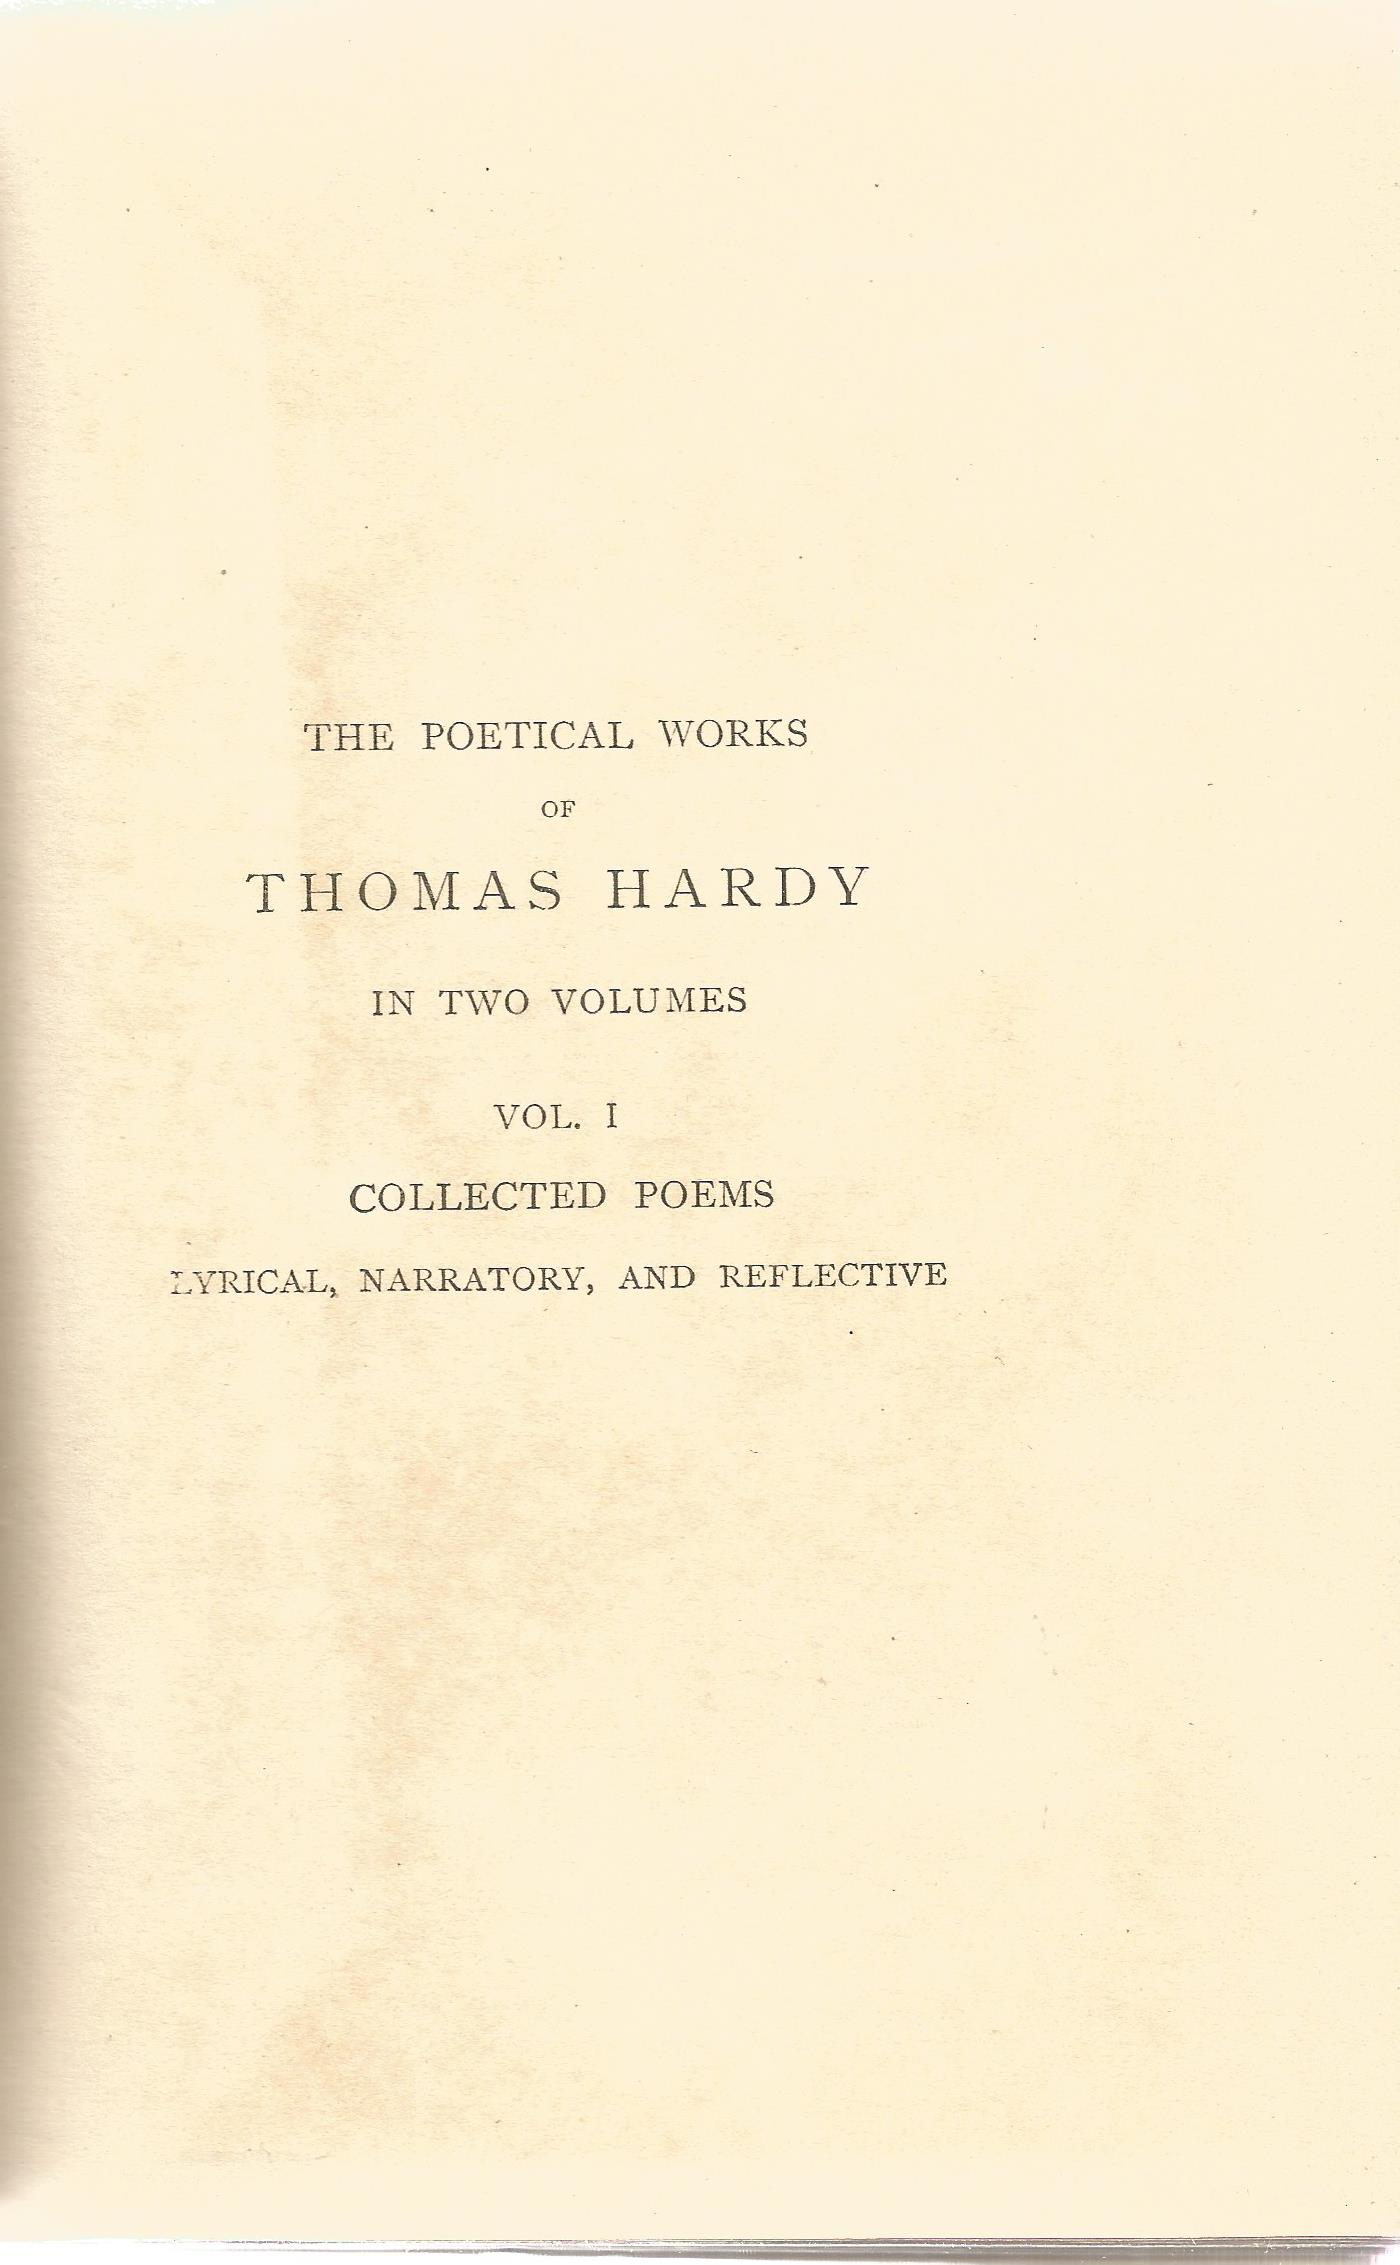 Hardback Book Collected Poems of Thomas Hardy with a Portrait 1919 First Edition published by - Image 3 of 3